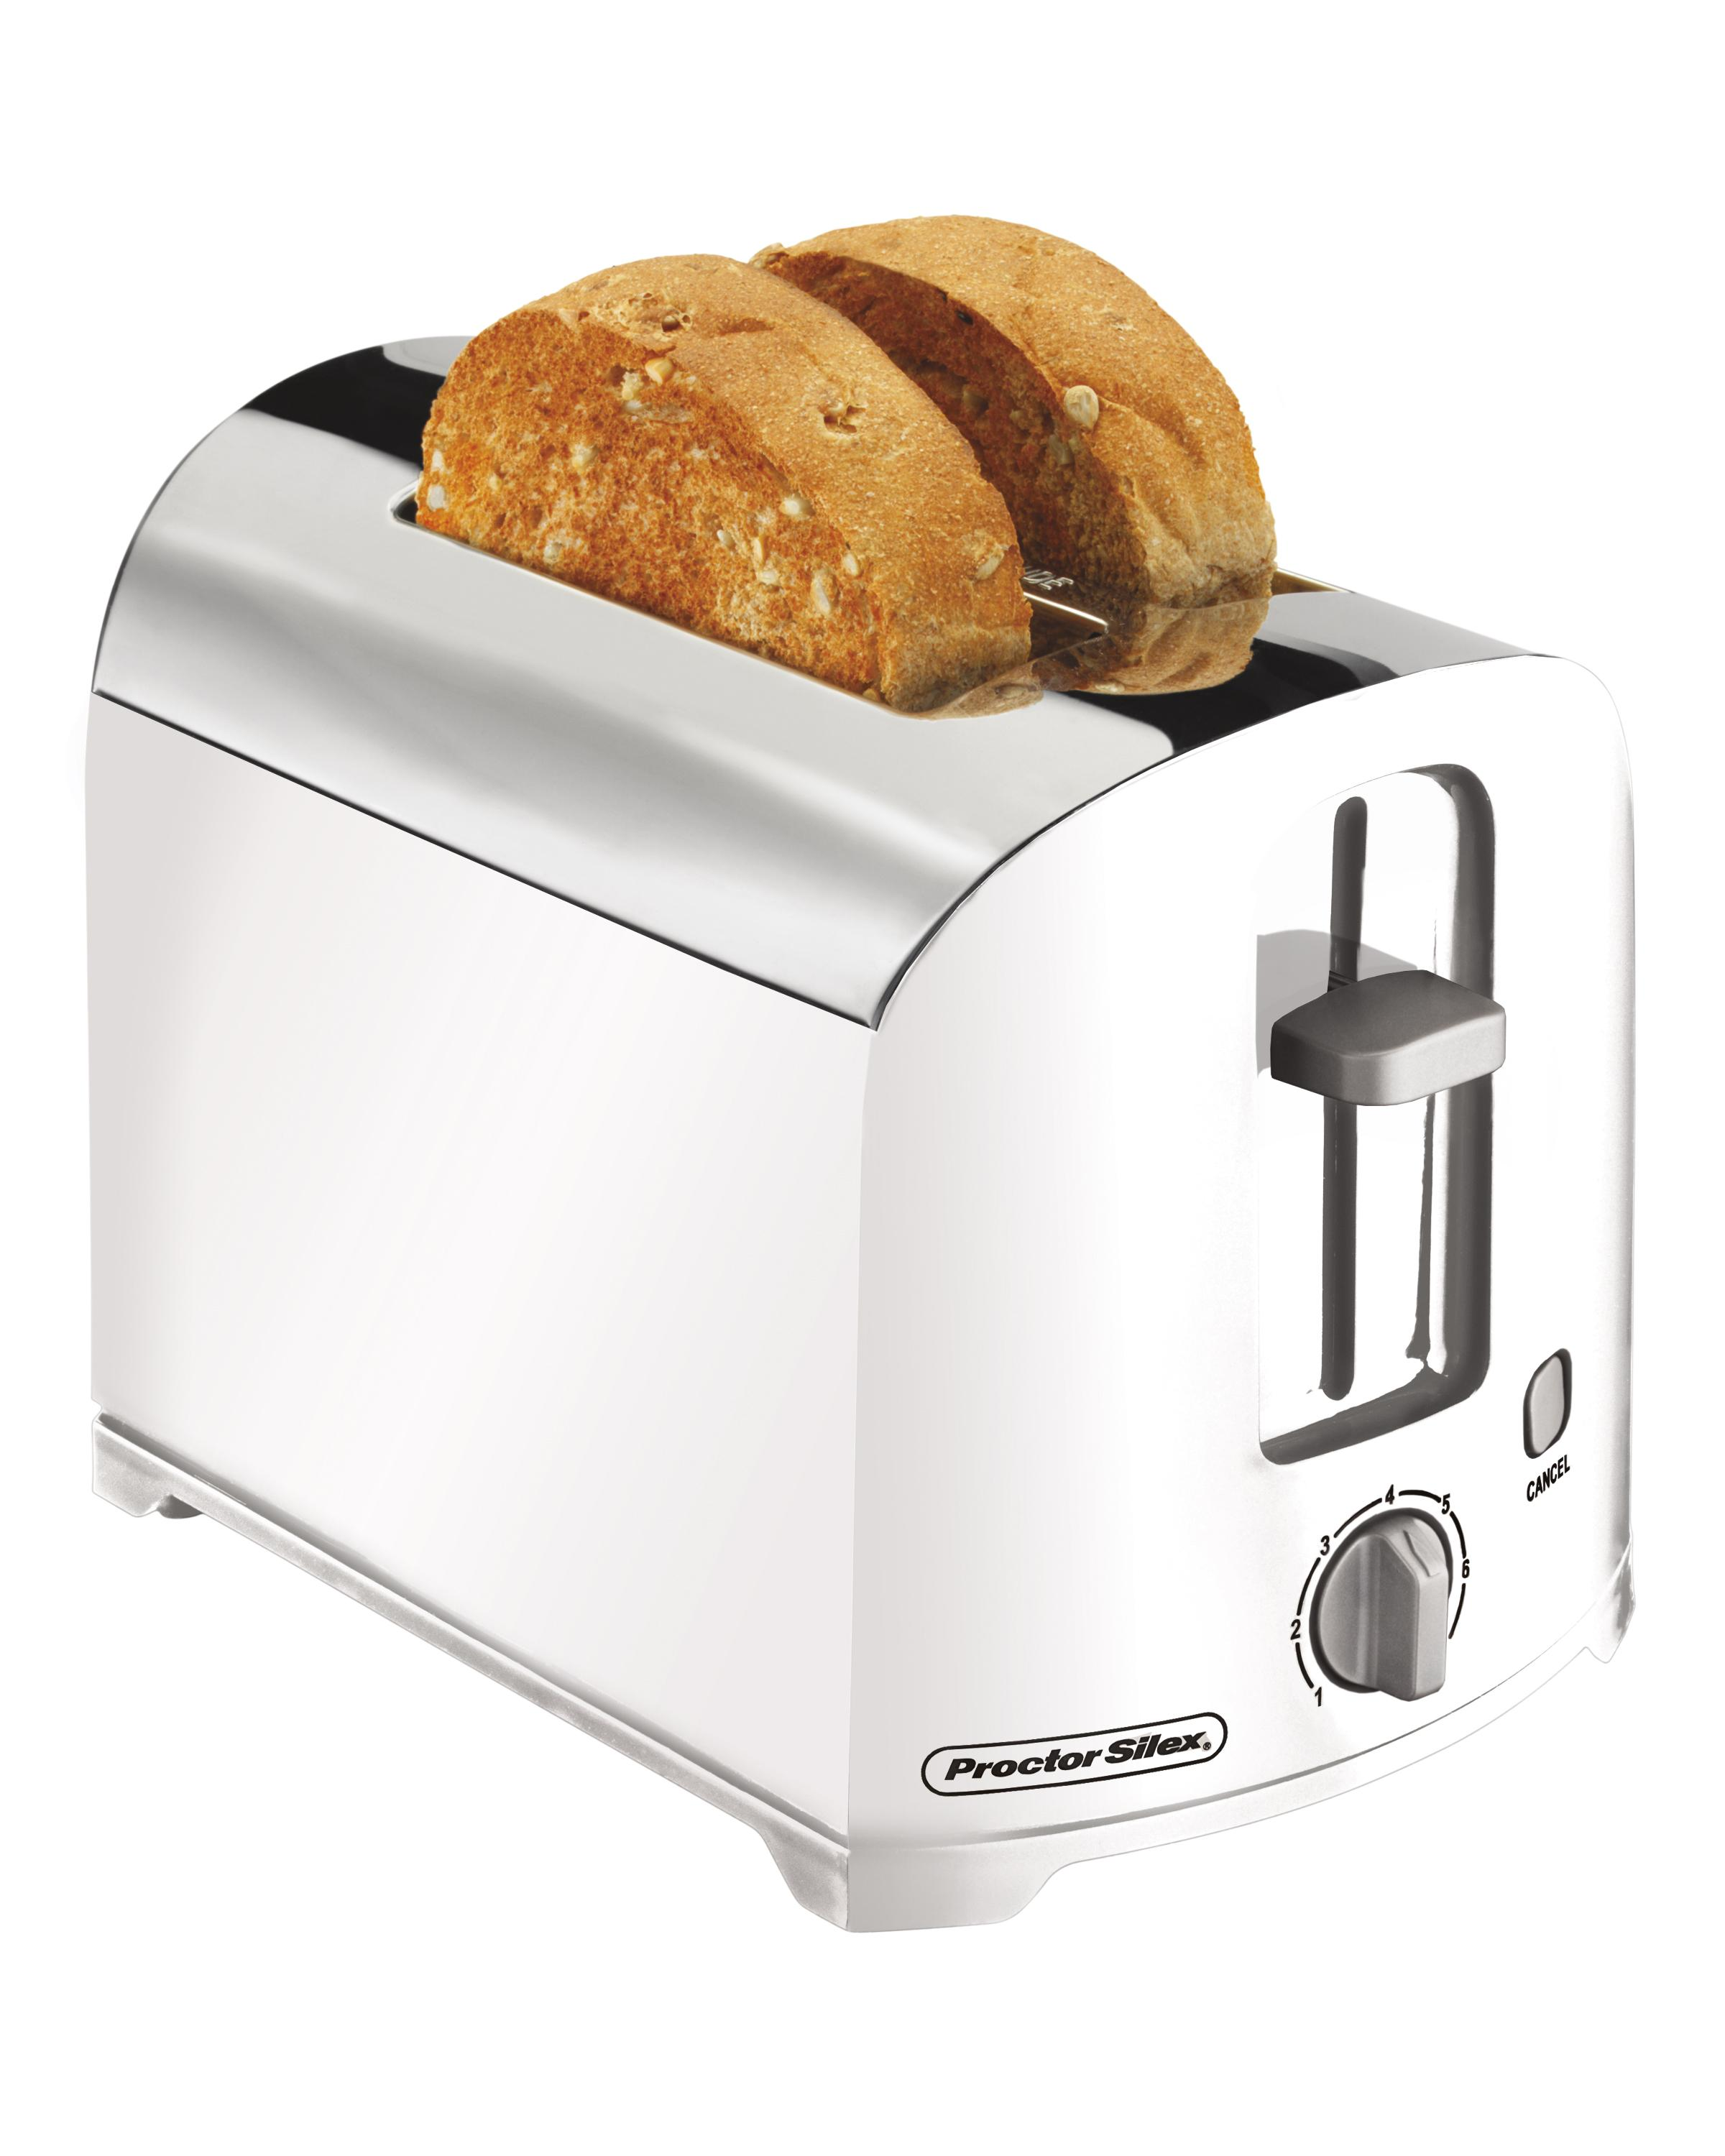 itm breakfast kitchen home bread toaster toast fast red sandwich electric slice